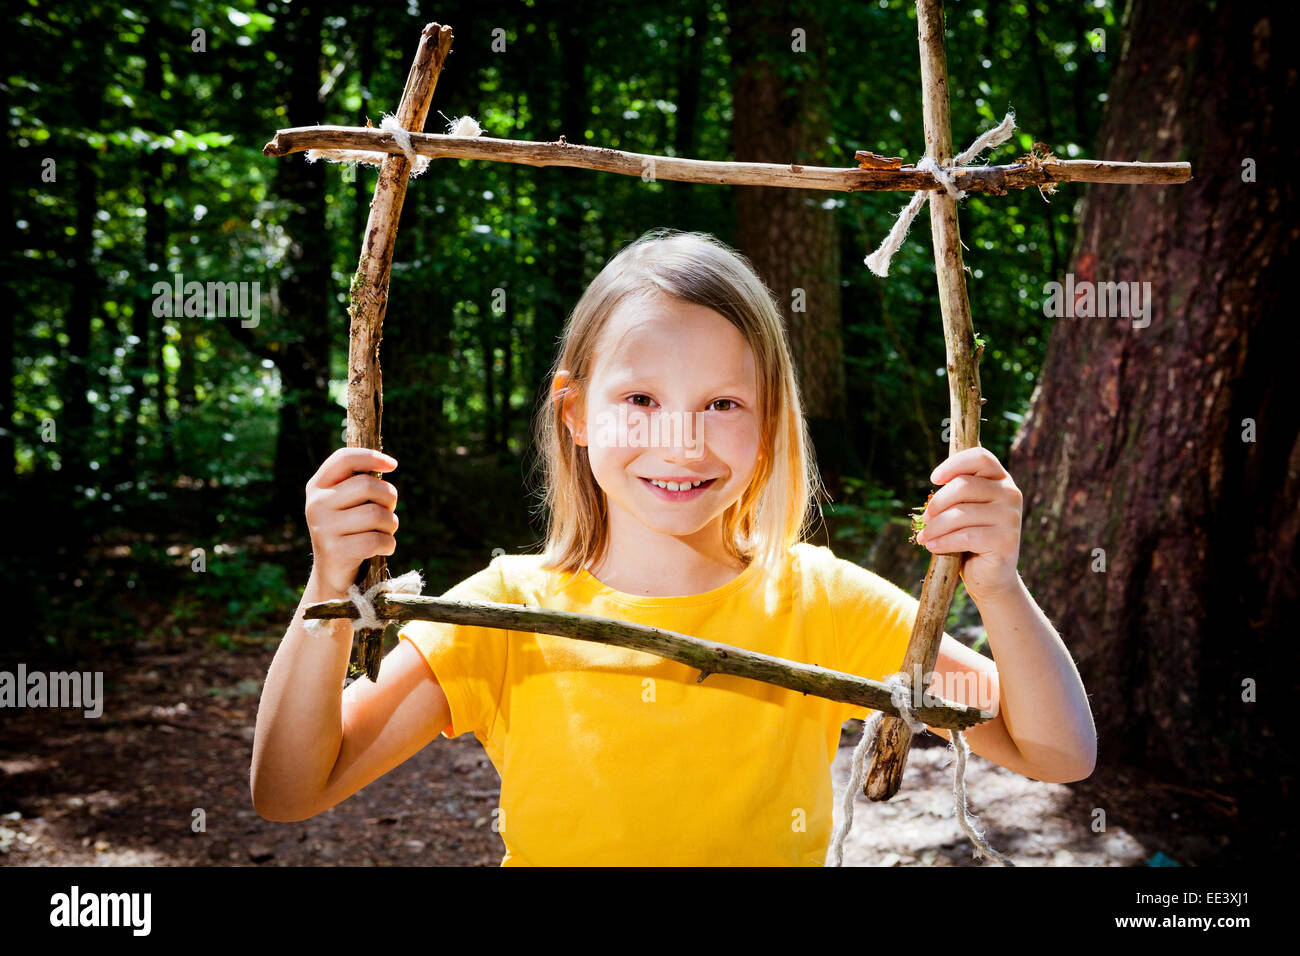 Girl crafting in a forest camp, Munich, Bavaria, Germany Stock Photo